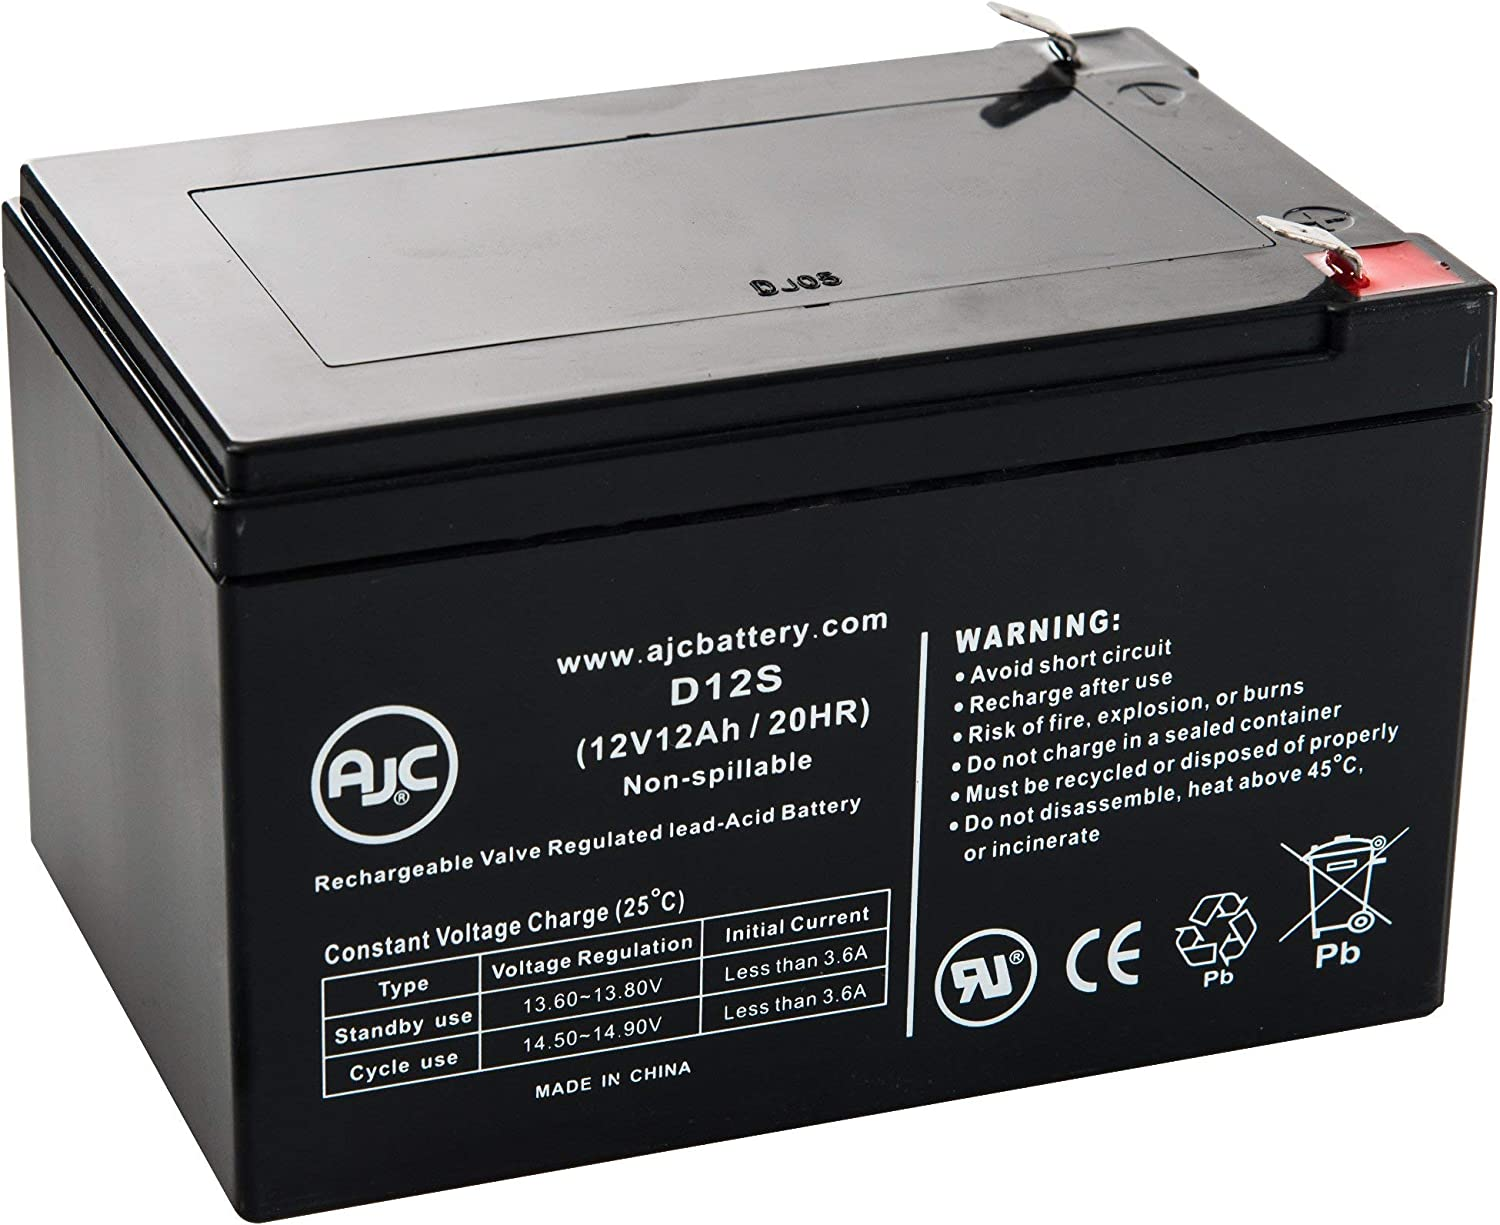 This is an AJC Brand Replacement IBM UPS1000TLV 12V 12Ah UPS Battery